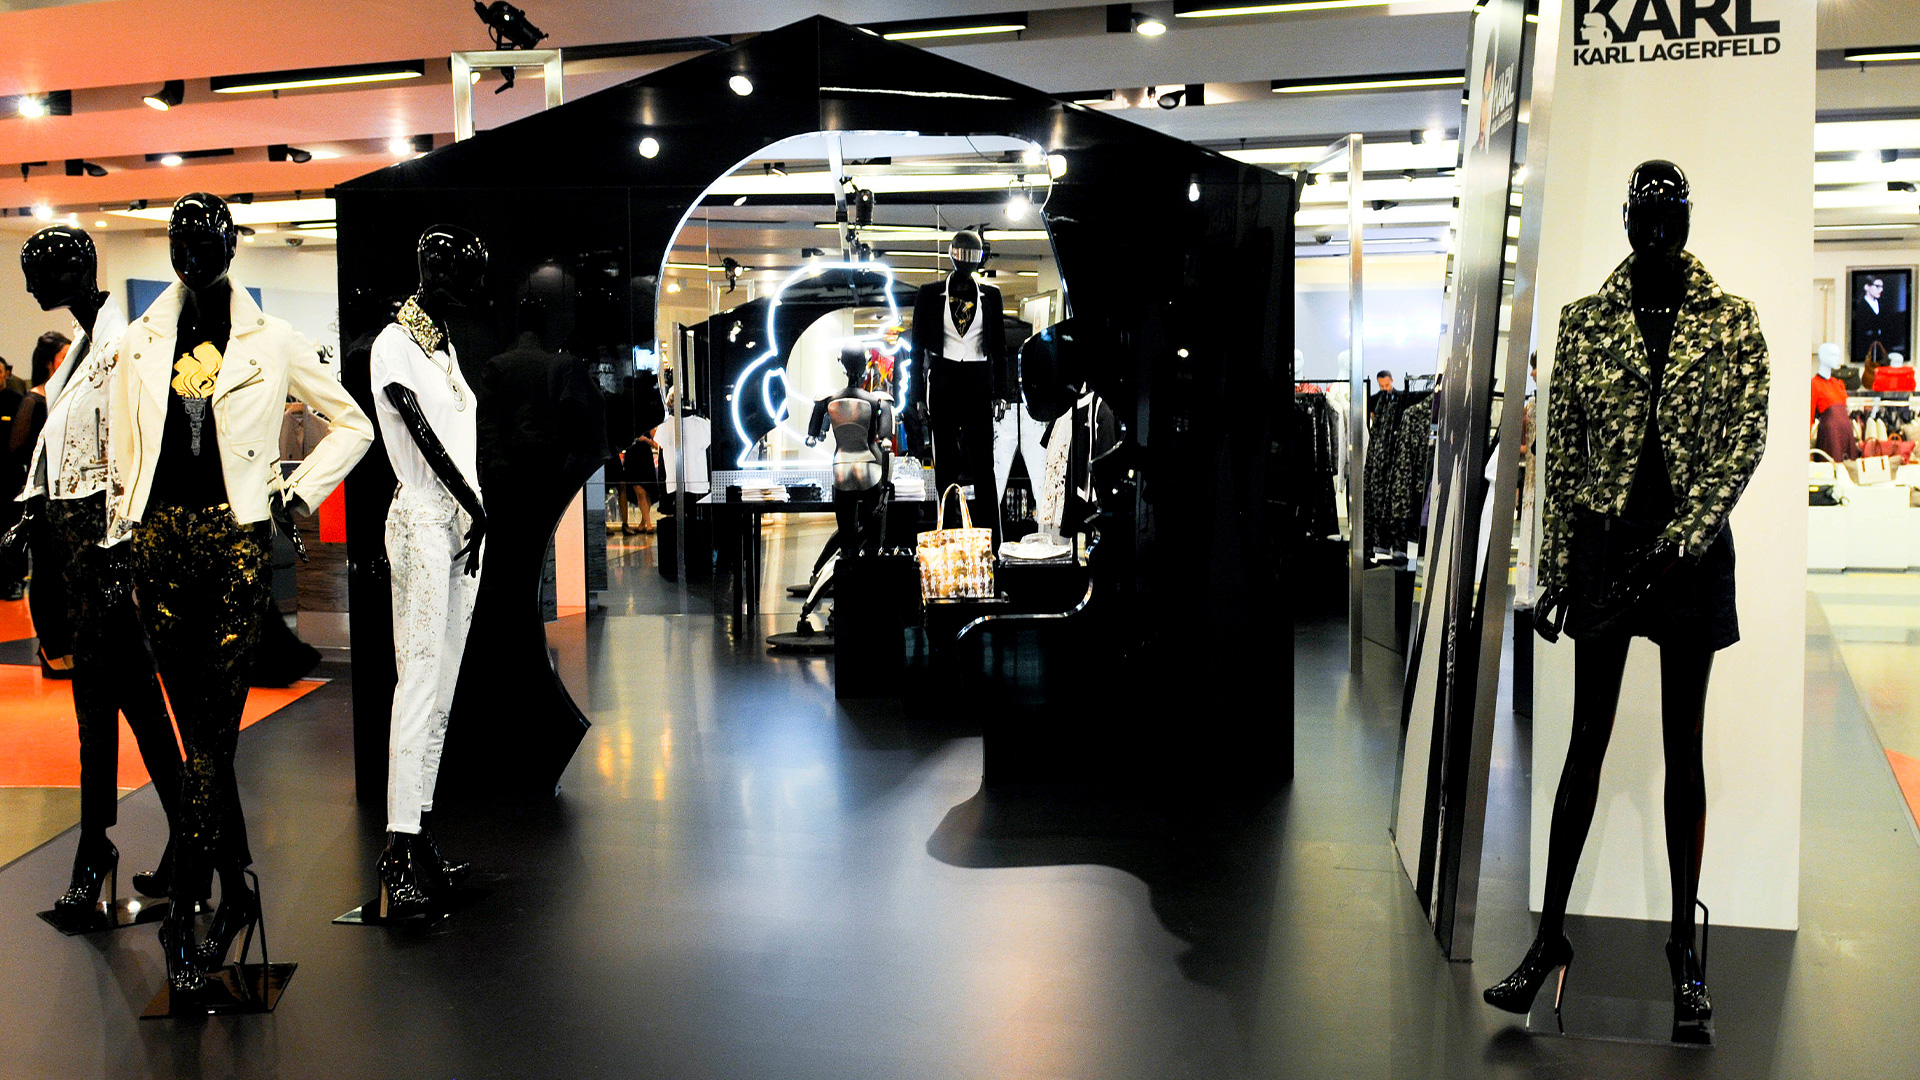 LIGANOVA | Karl Lagerfeld | POS Campaign – Special Window & Instore Installation | Insights